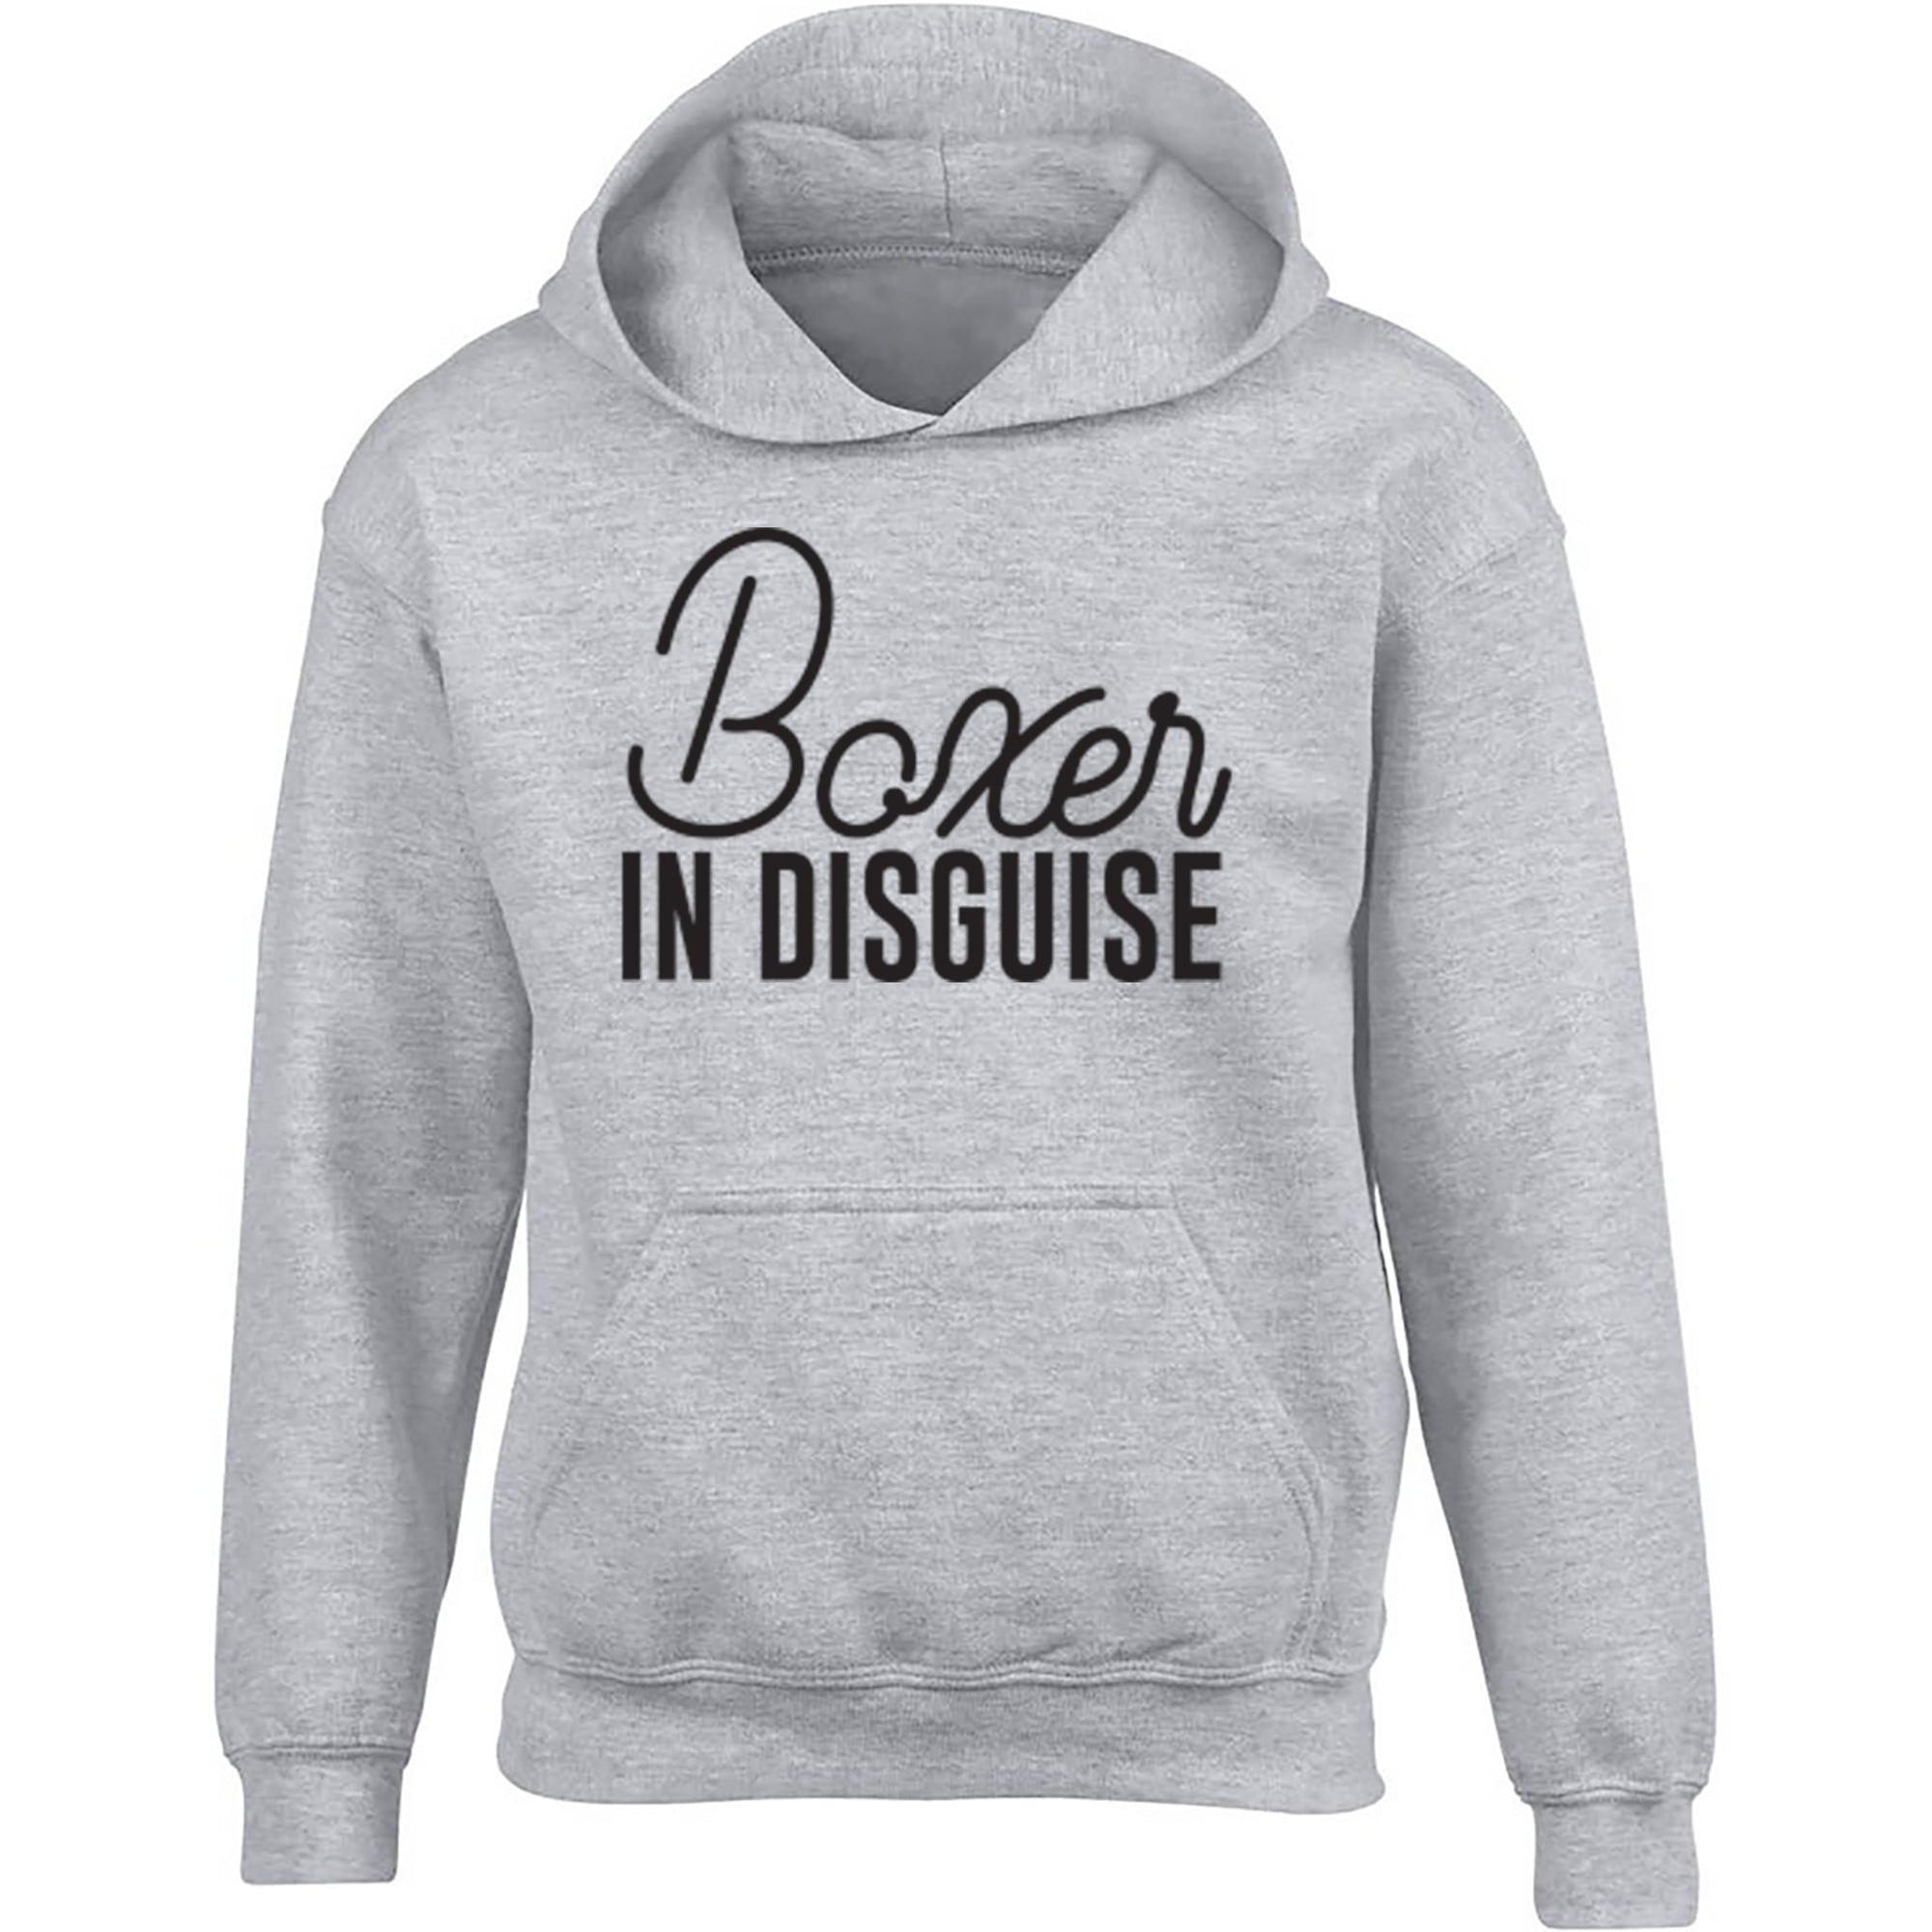 Boxer In Disguise Childrens Ages 3/4-12/14 Unisex Hoodie S0071 - Illustrated Identity Ltd.